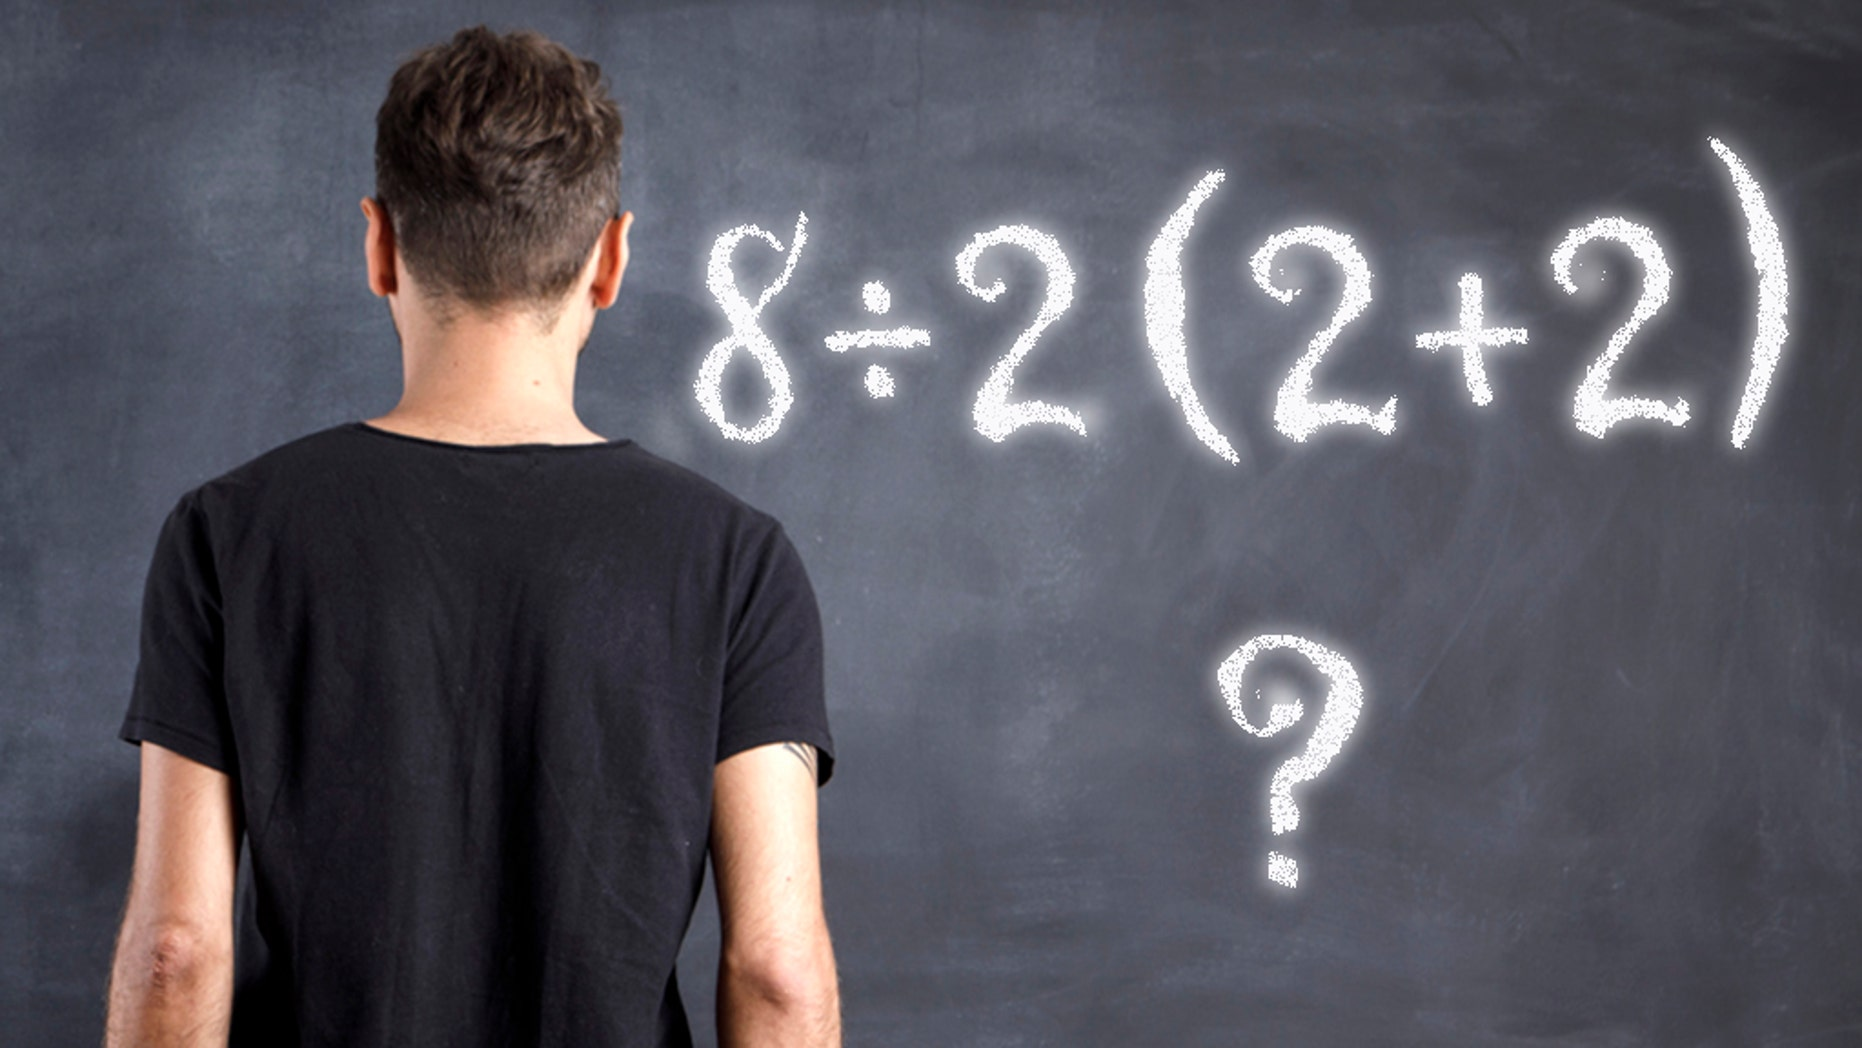 This 'Simple' Math Equation Has Divided The Internet. Can You Solve It?